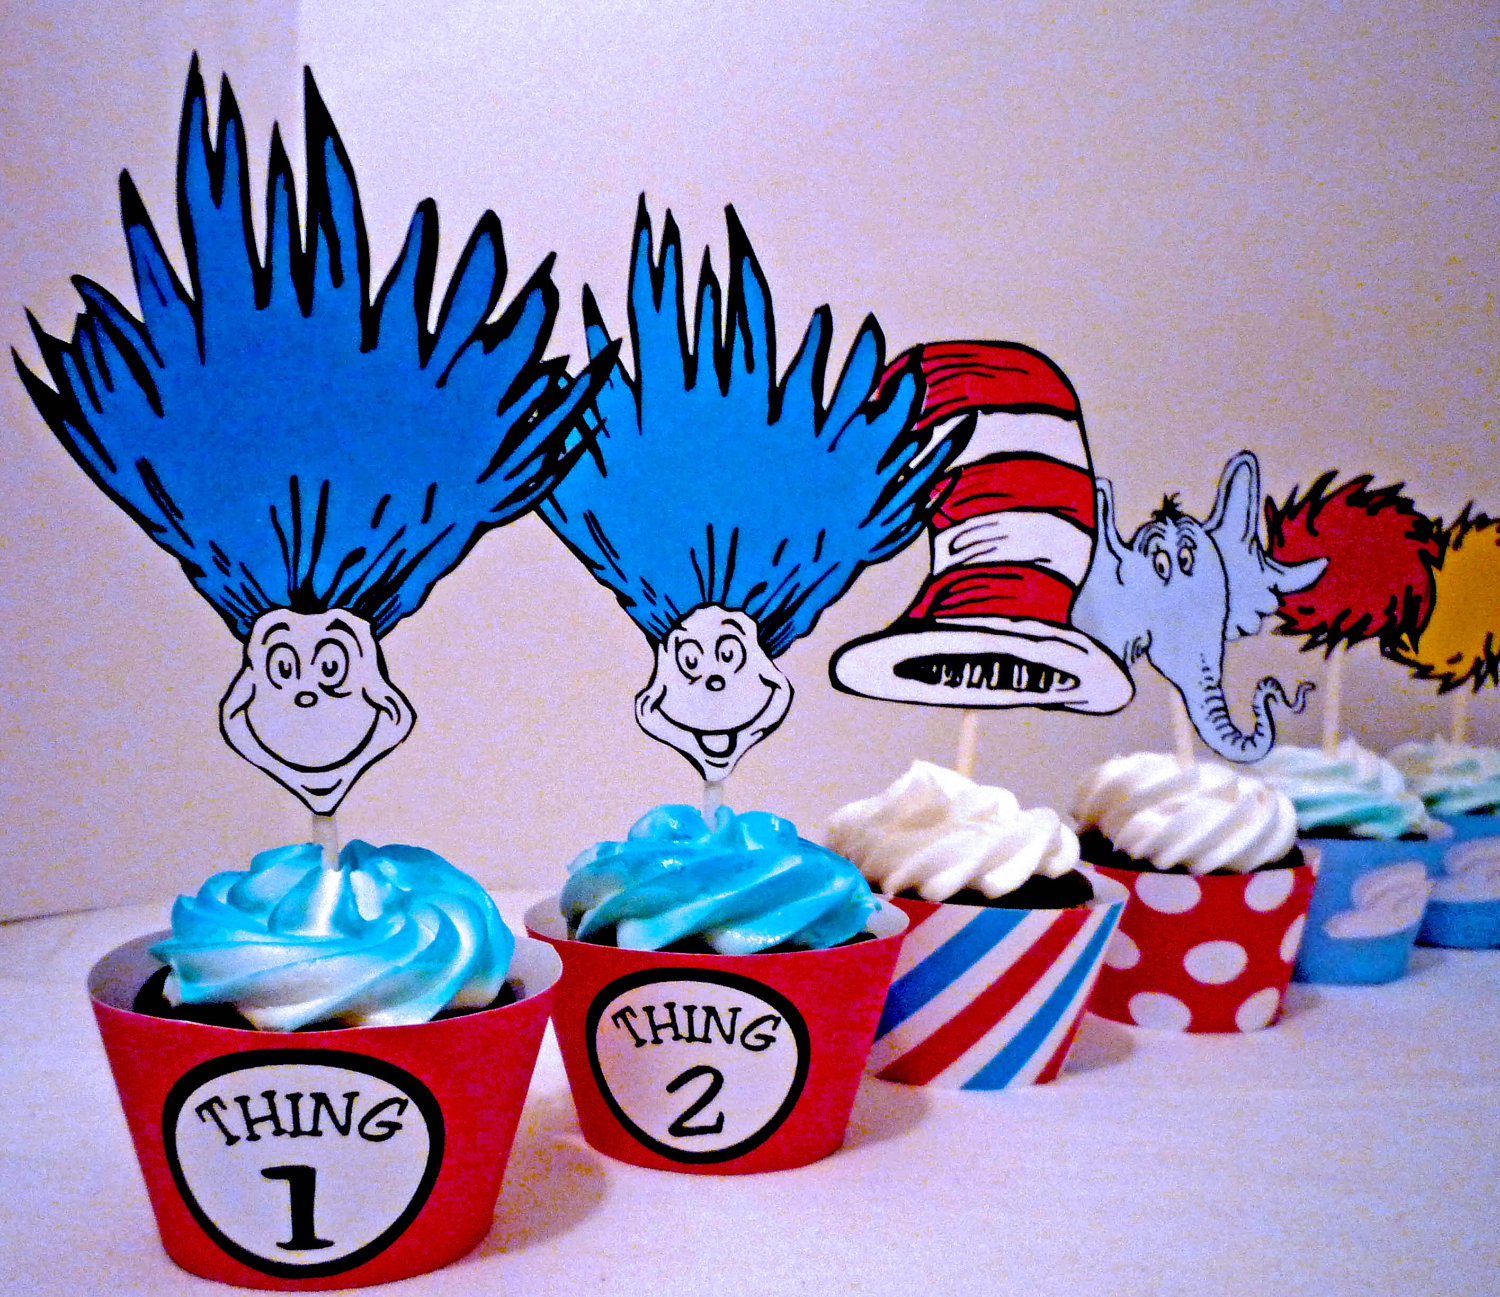 Dr Seuss Party Decorations Chloes Celebrations Ten Great Kids Party Ideas Celebrate